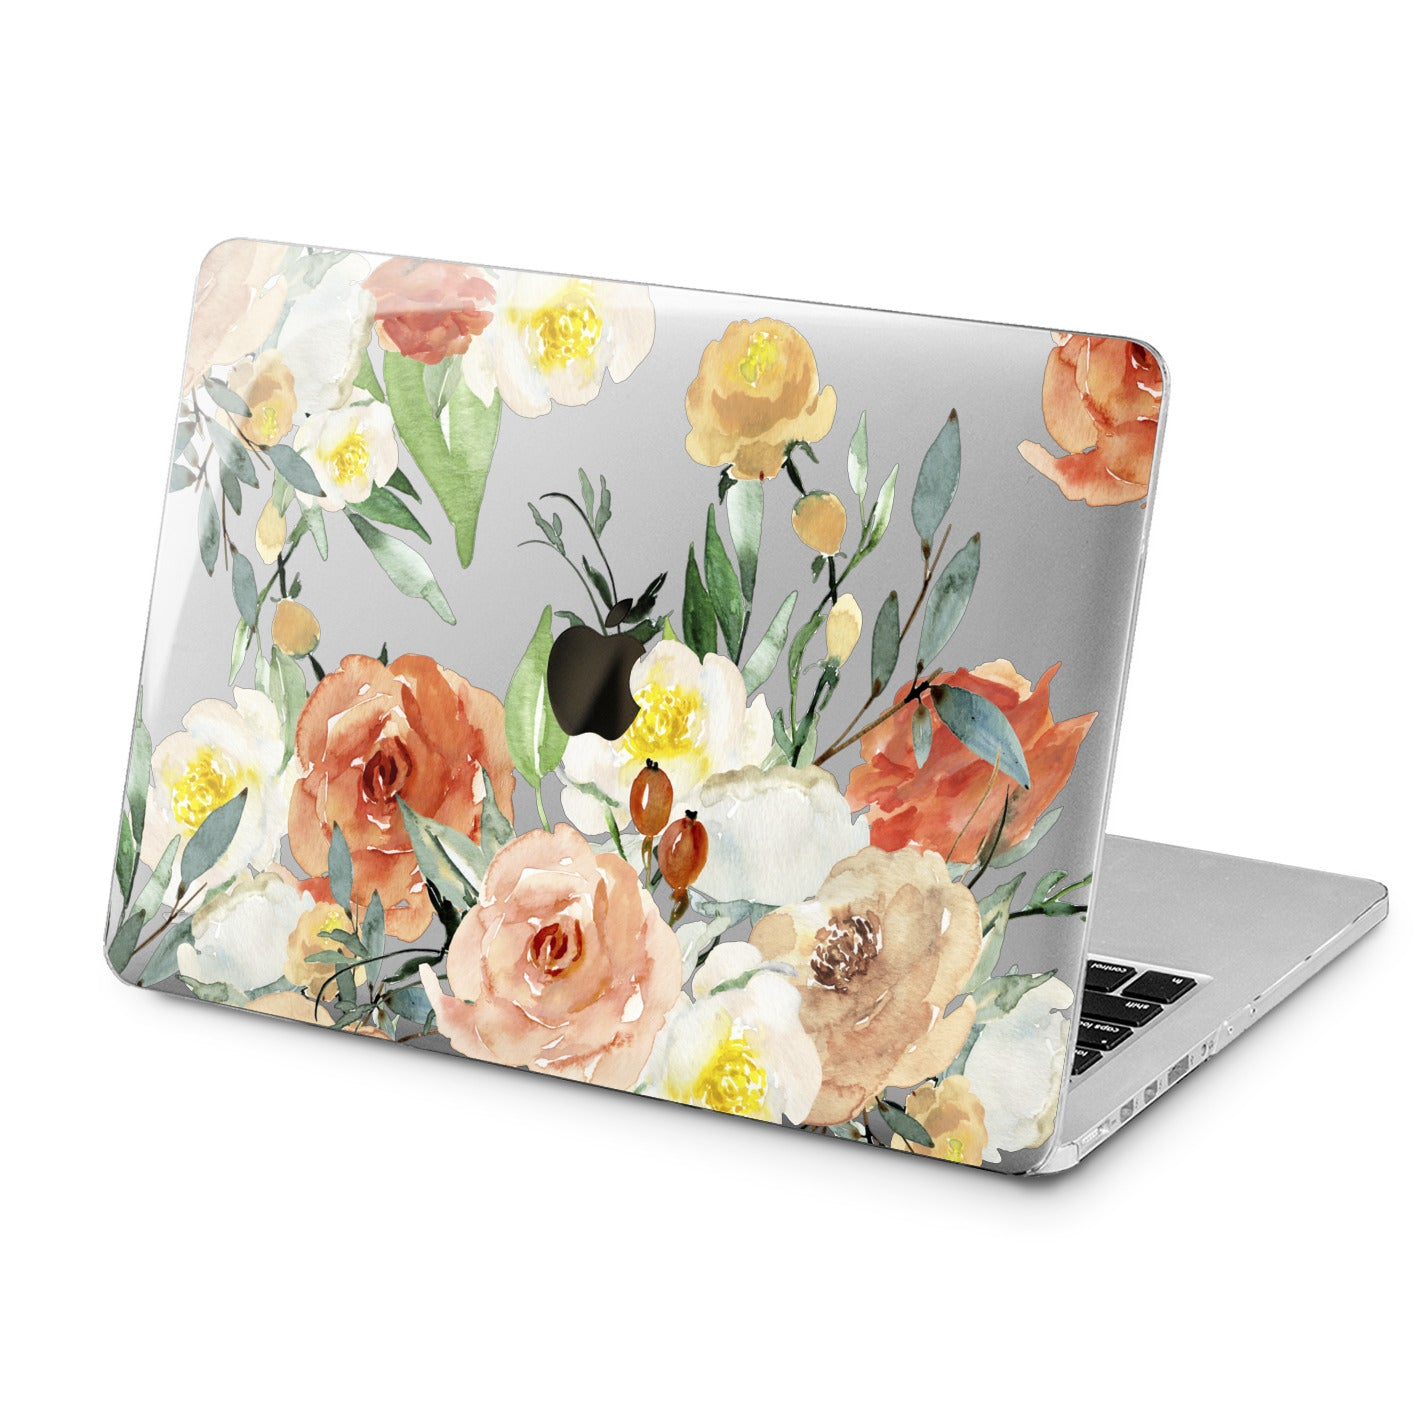 Lex Altern Orange Roses Print Case for your Laptop Apple Macbook.